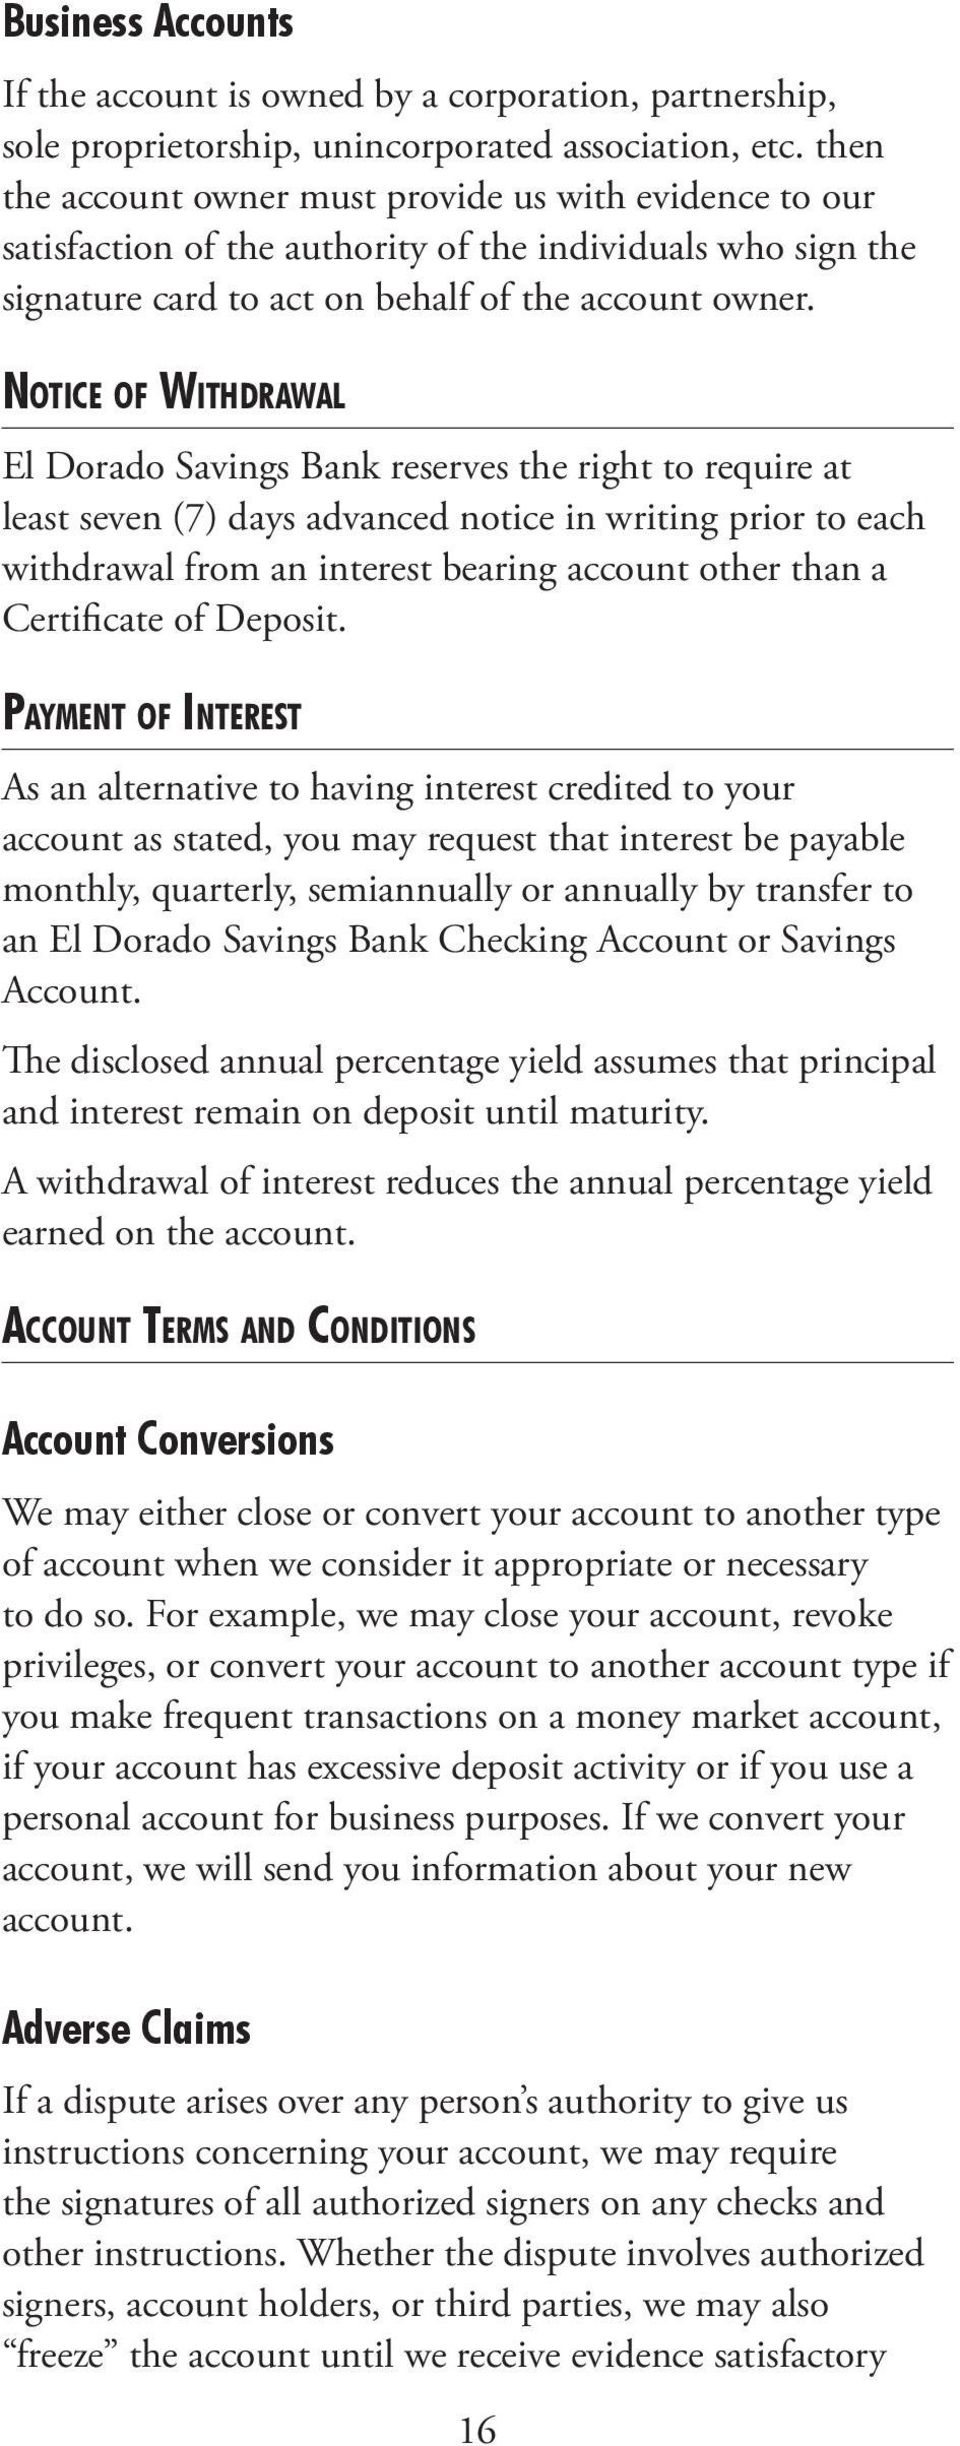 Notice of Withdrawal El Dorado Savings Bank reserves the right to require at least seven (7) days advanced notice in writing prior to each withdrawal from an interest bearing account other than a